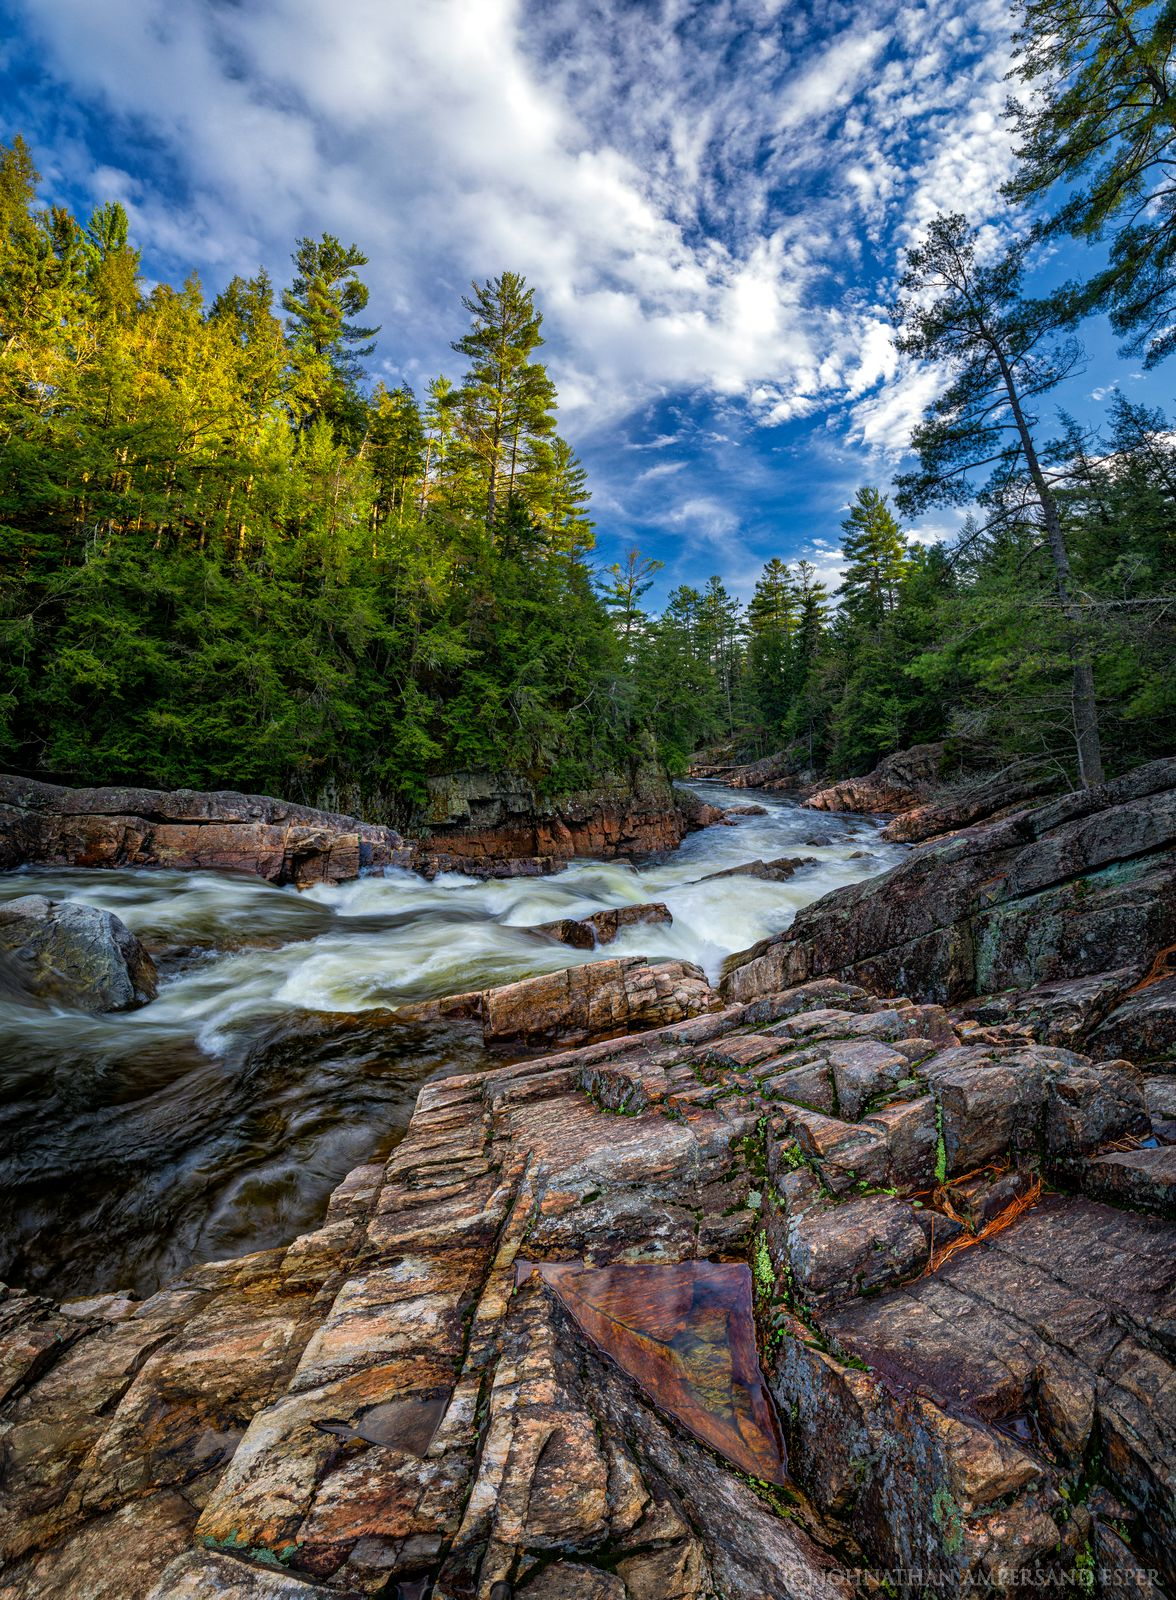 Griffin Falls,Griffin Gorge,East Branch Sacandaga River,Sacandaga River,vertical panorama,spring,2019, photo